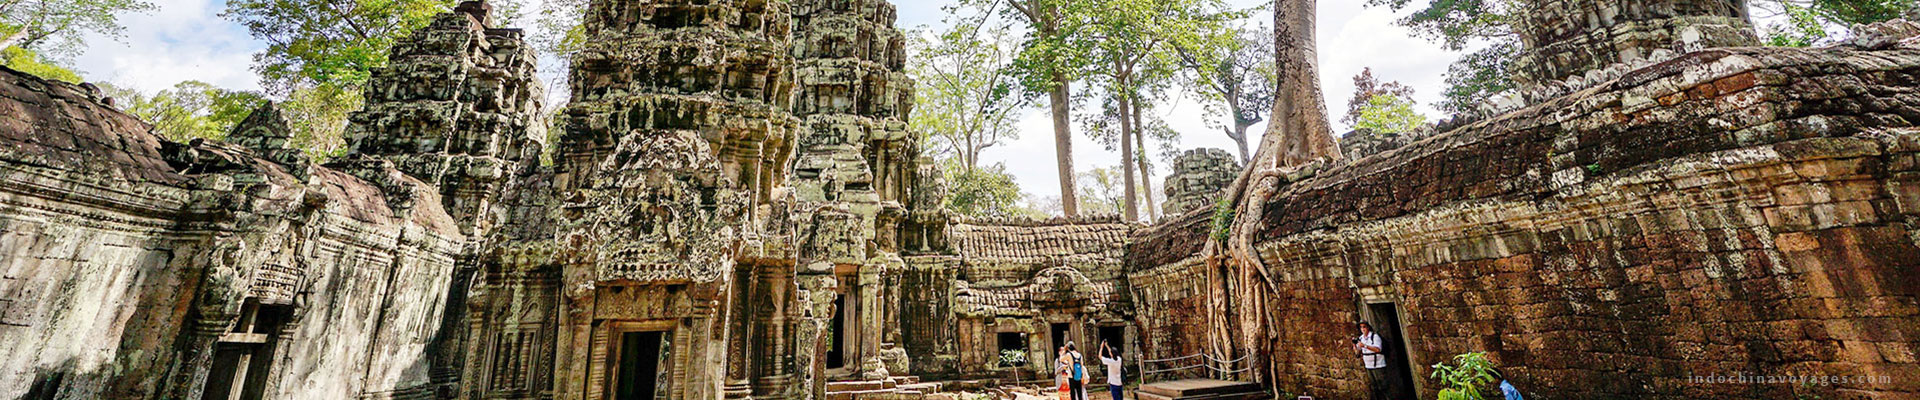 Cambodia tours 2018 – All things you need to know